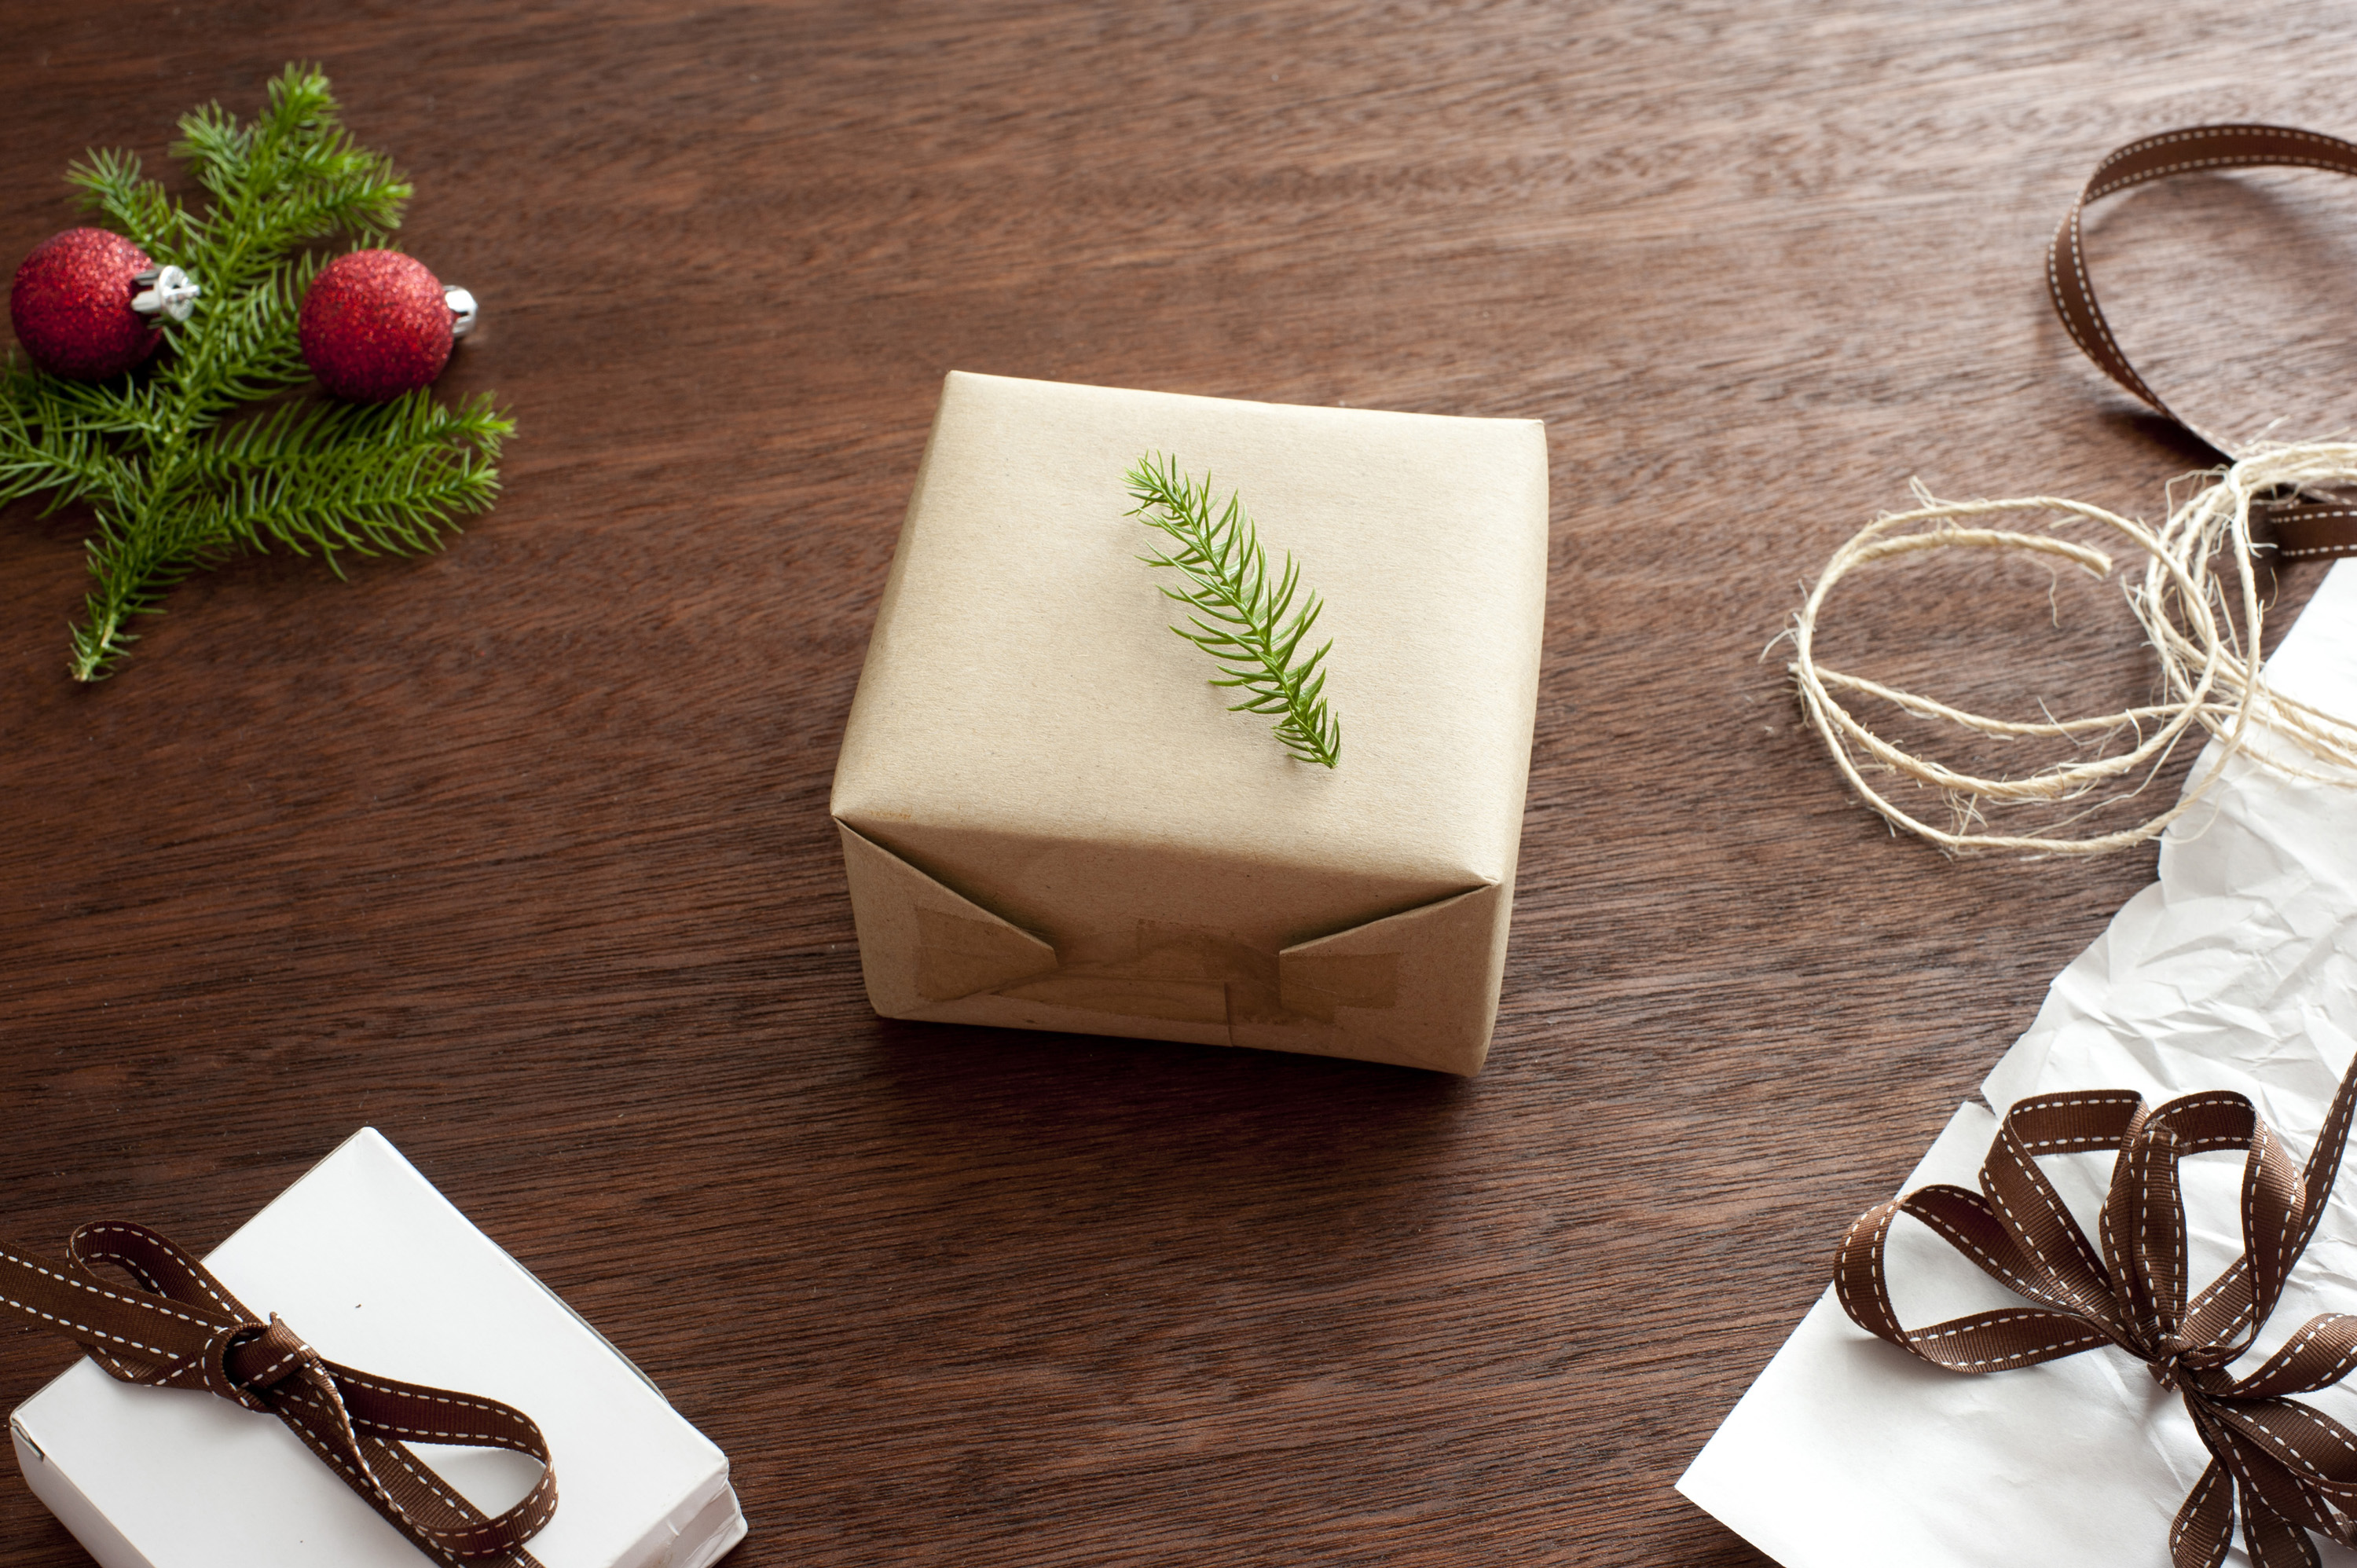 photo of wrapped present with fir tree decoration